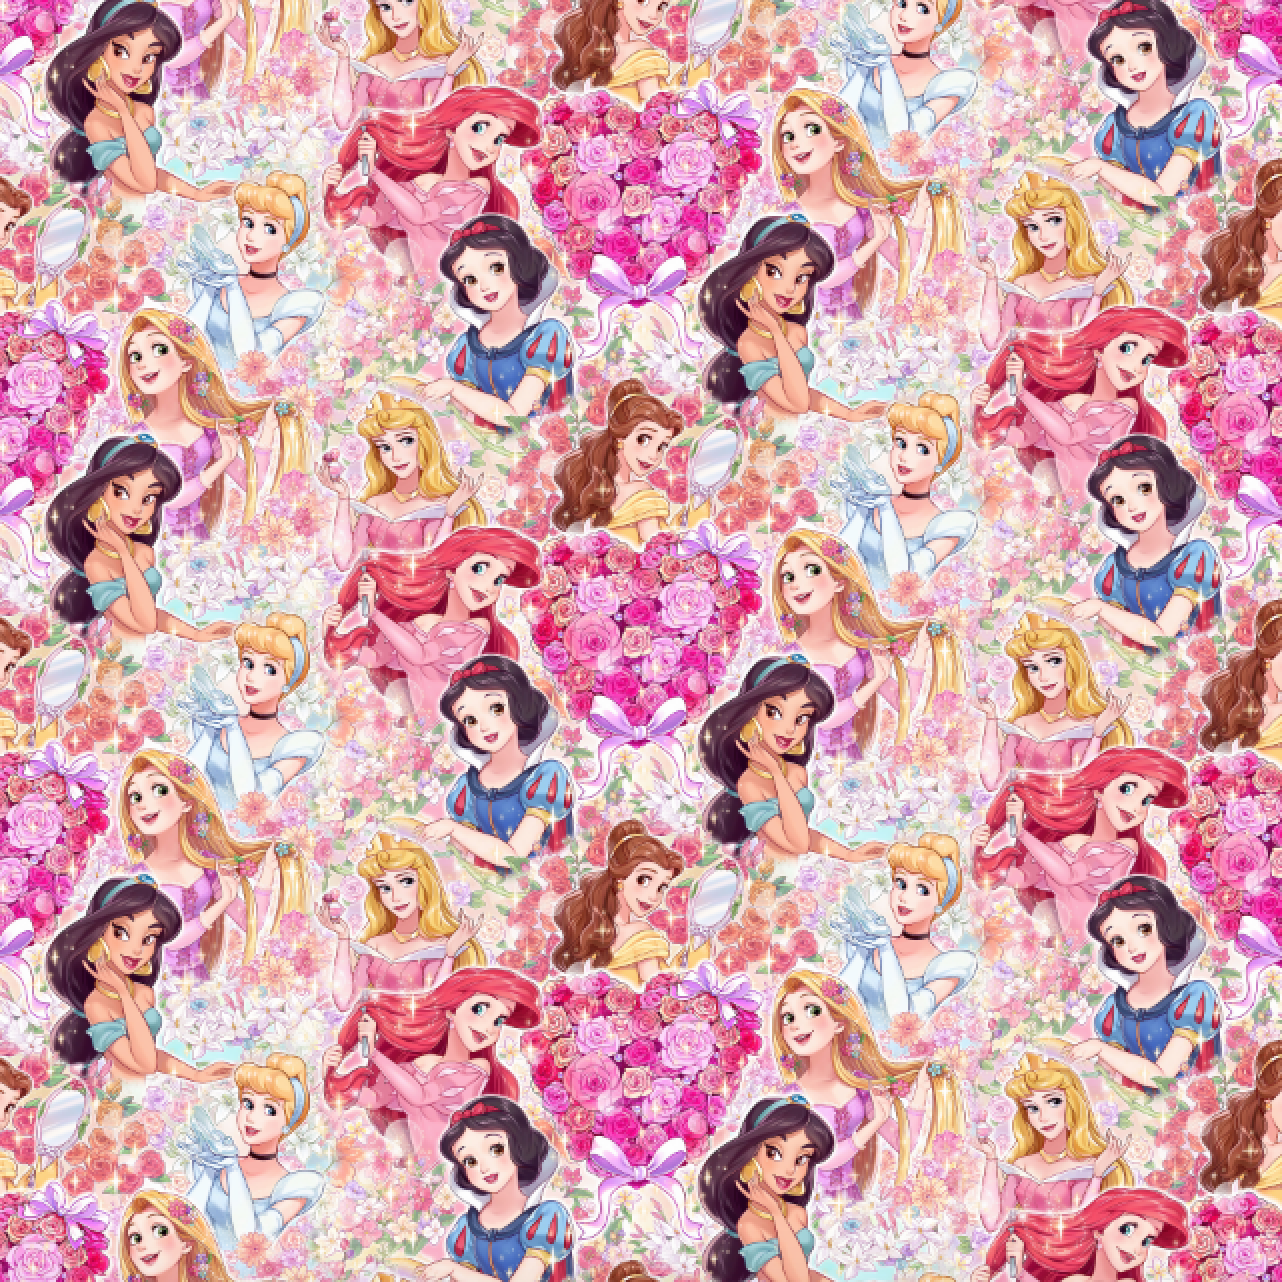 PRE ORDER - Princesses in the Garden - Digital Fabric Print